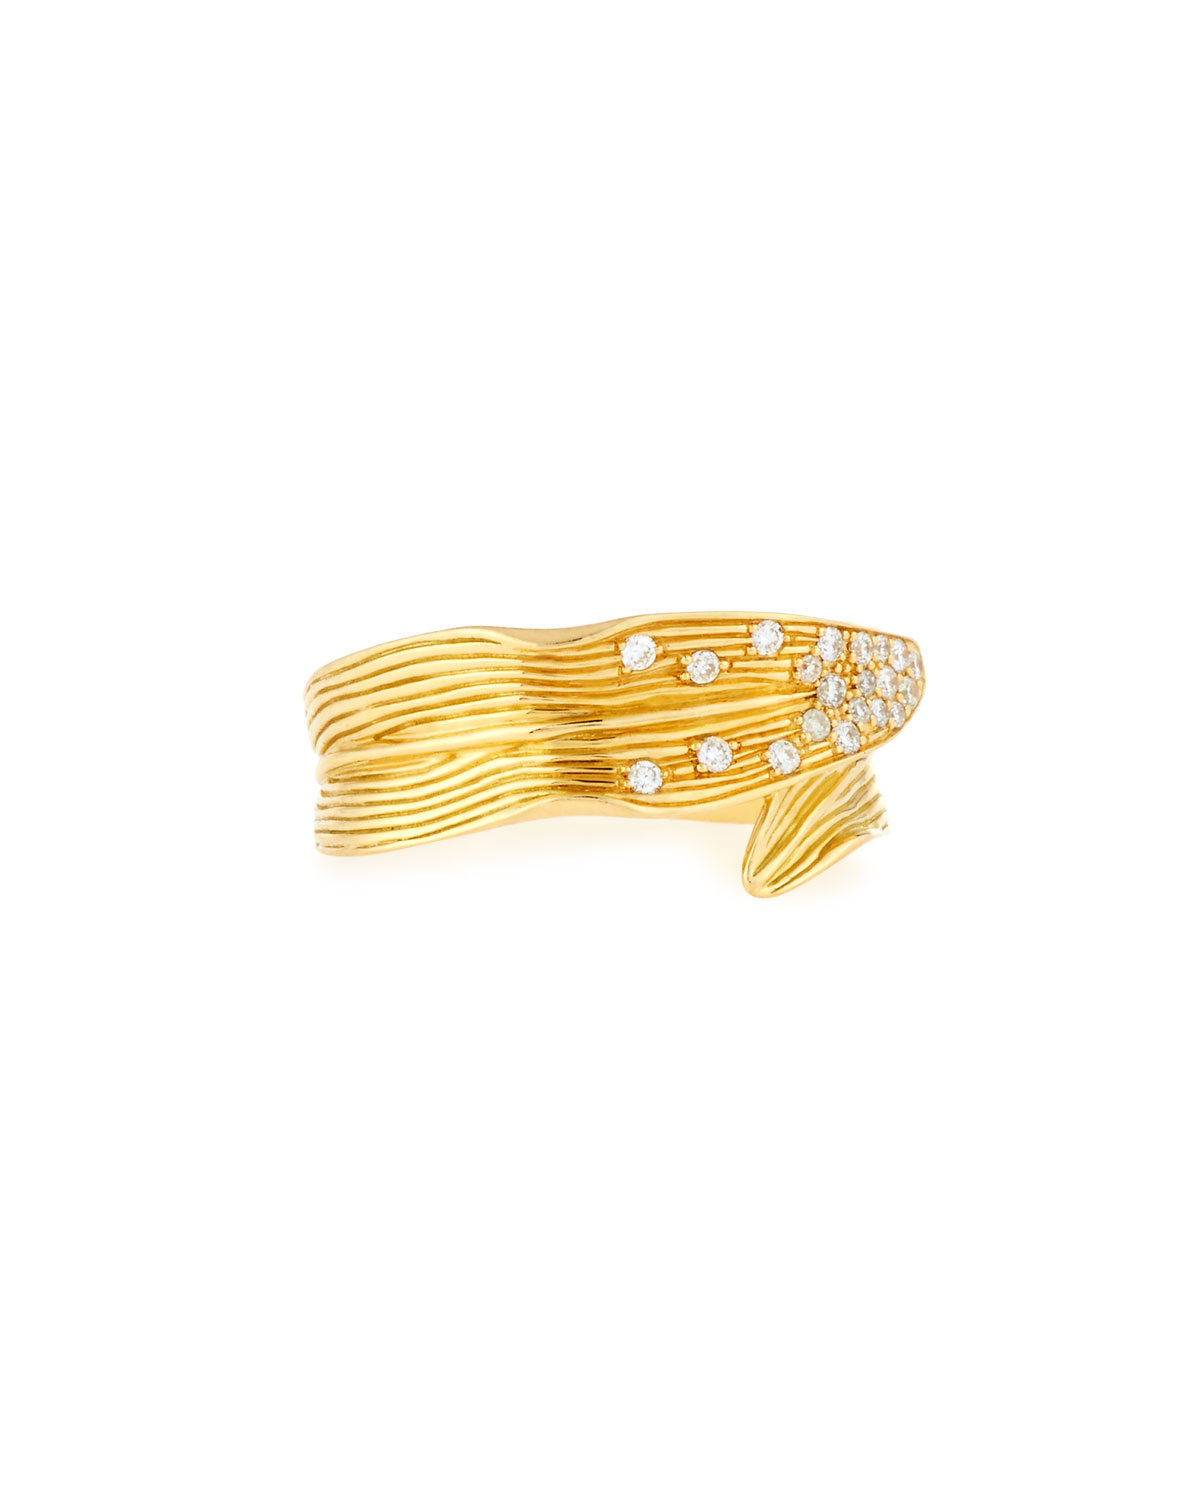 Michael Aram Palm Carved 18K Gold Ring with Diamonds, Size 7, 0.14 tdcw